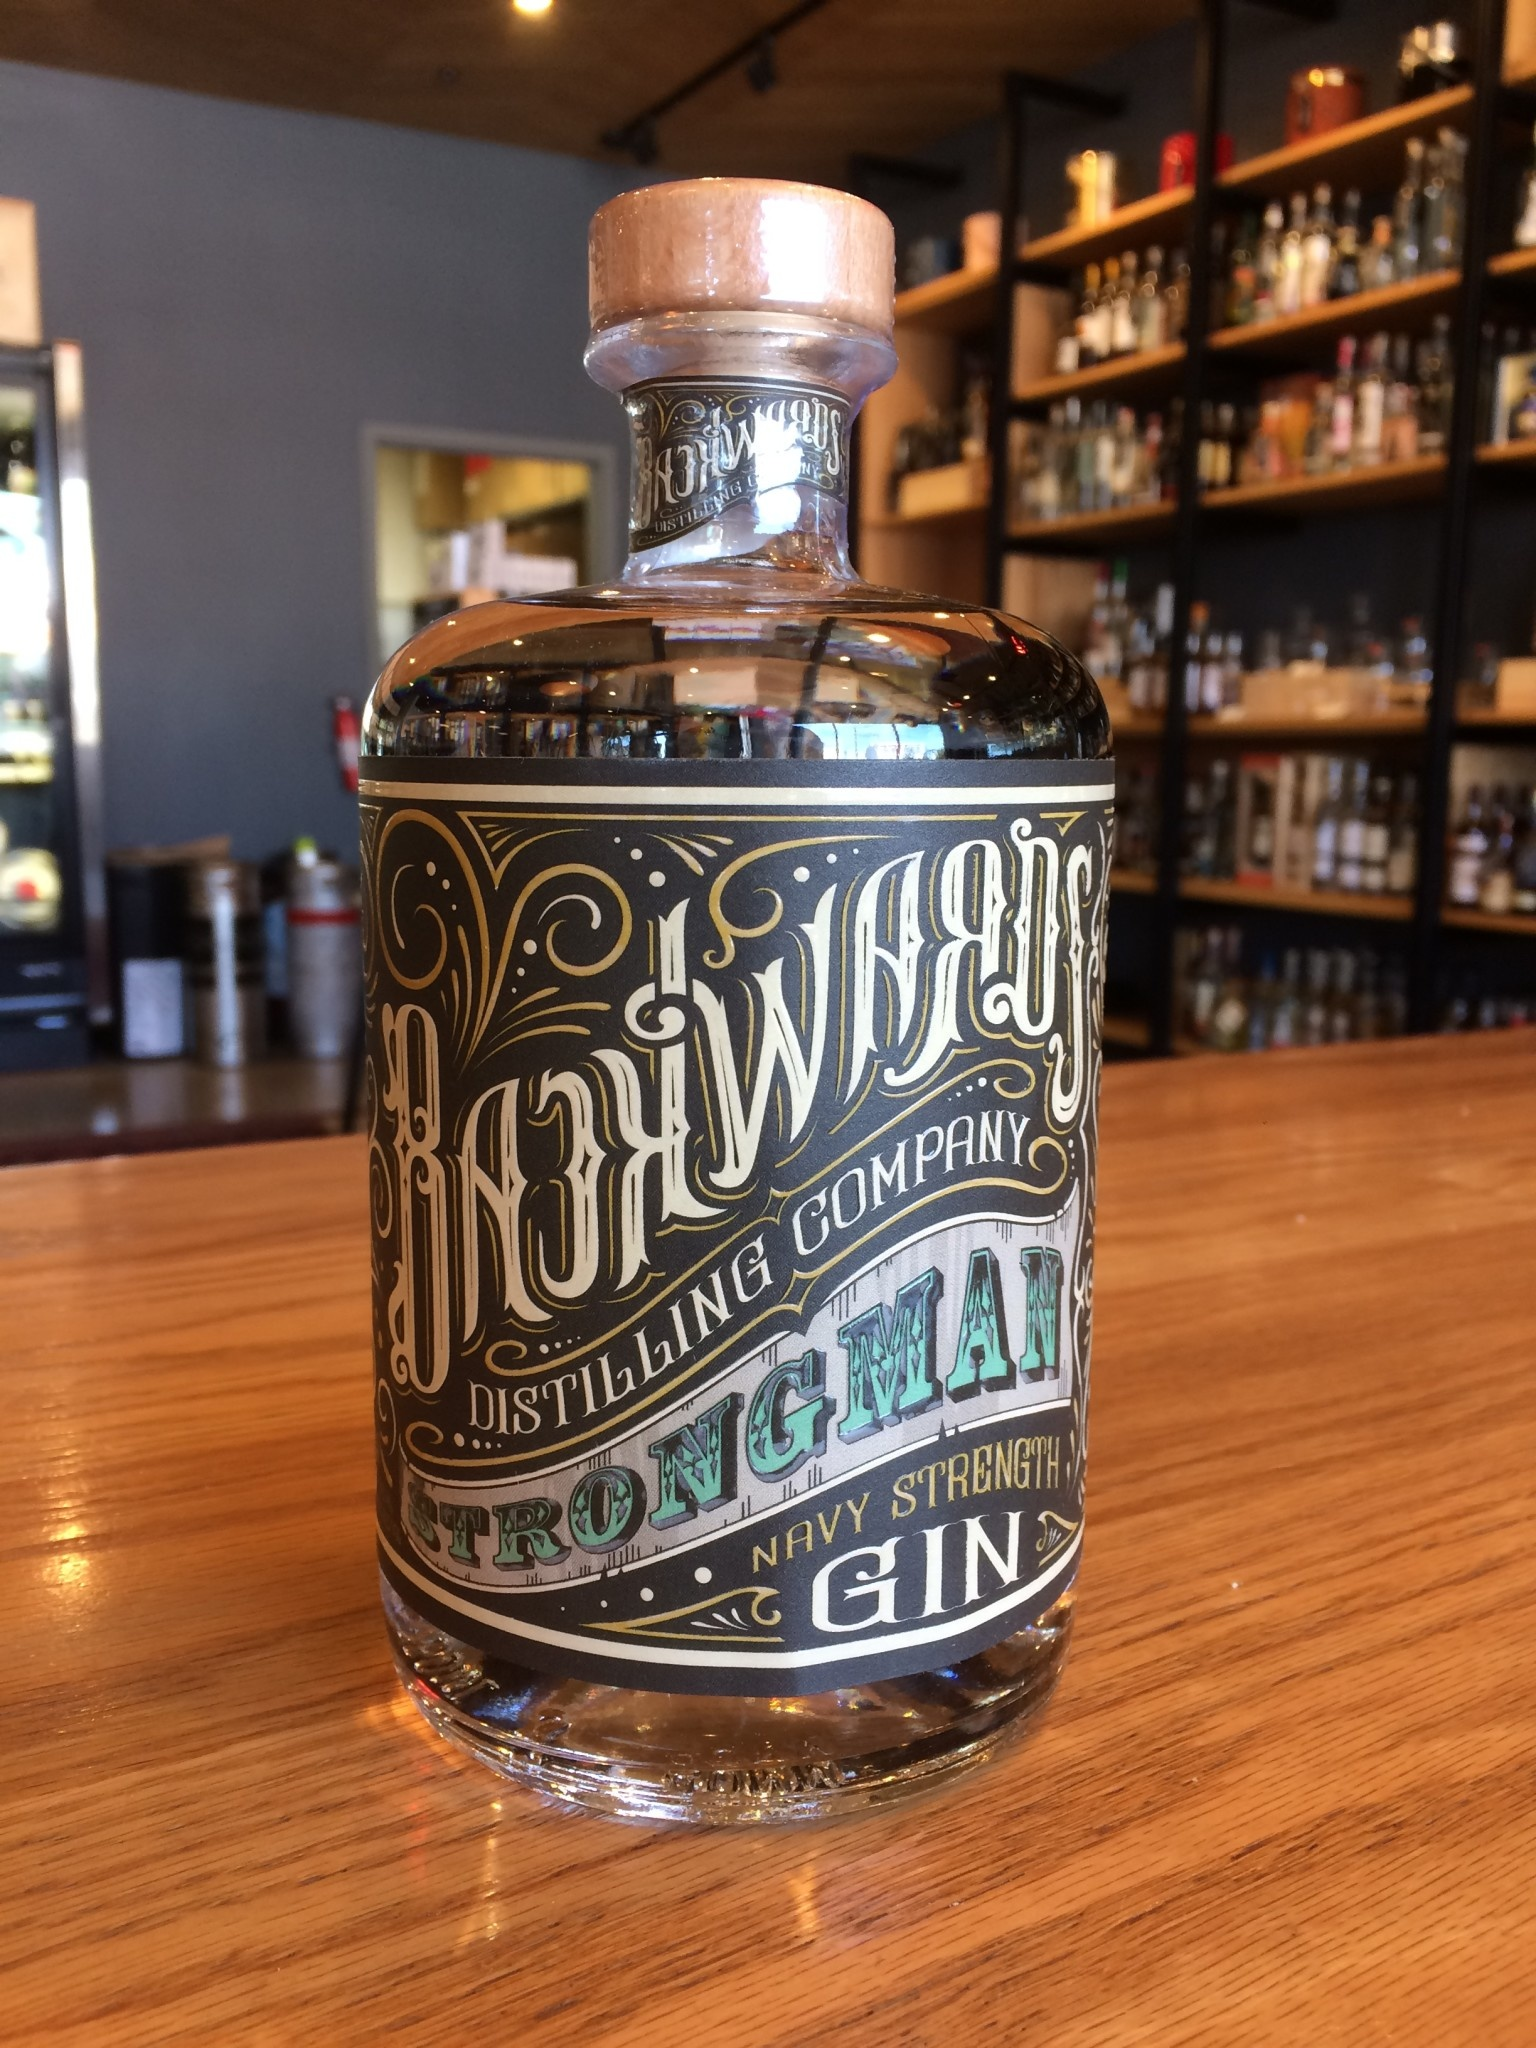 Backwards Distilling CO. Backwards Distilling Co. Strongman Gin 750ml